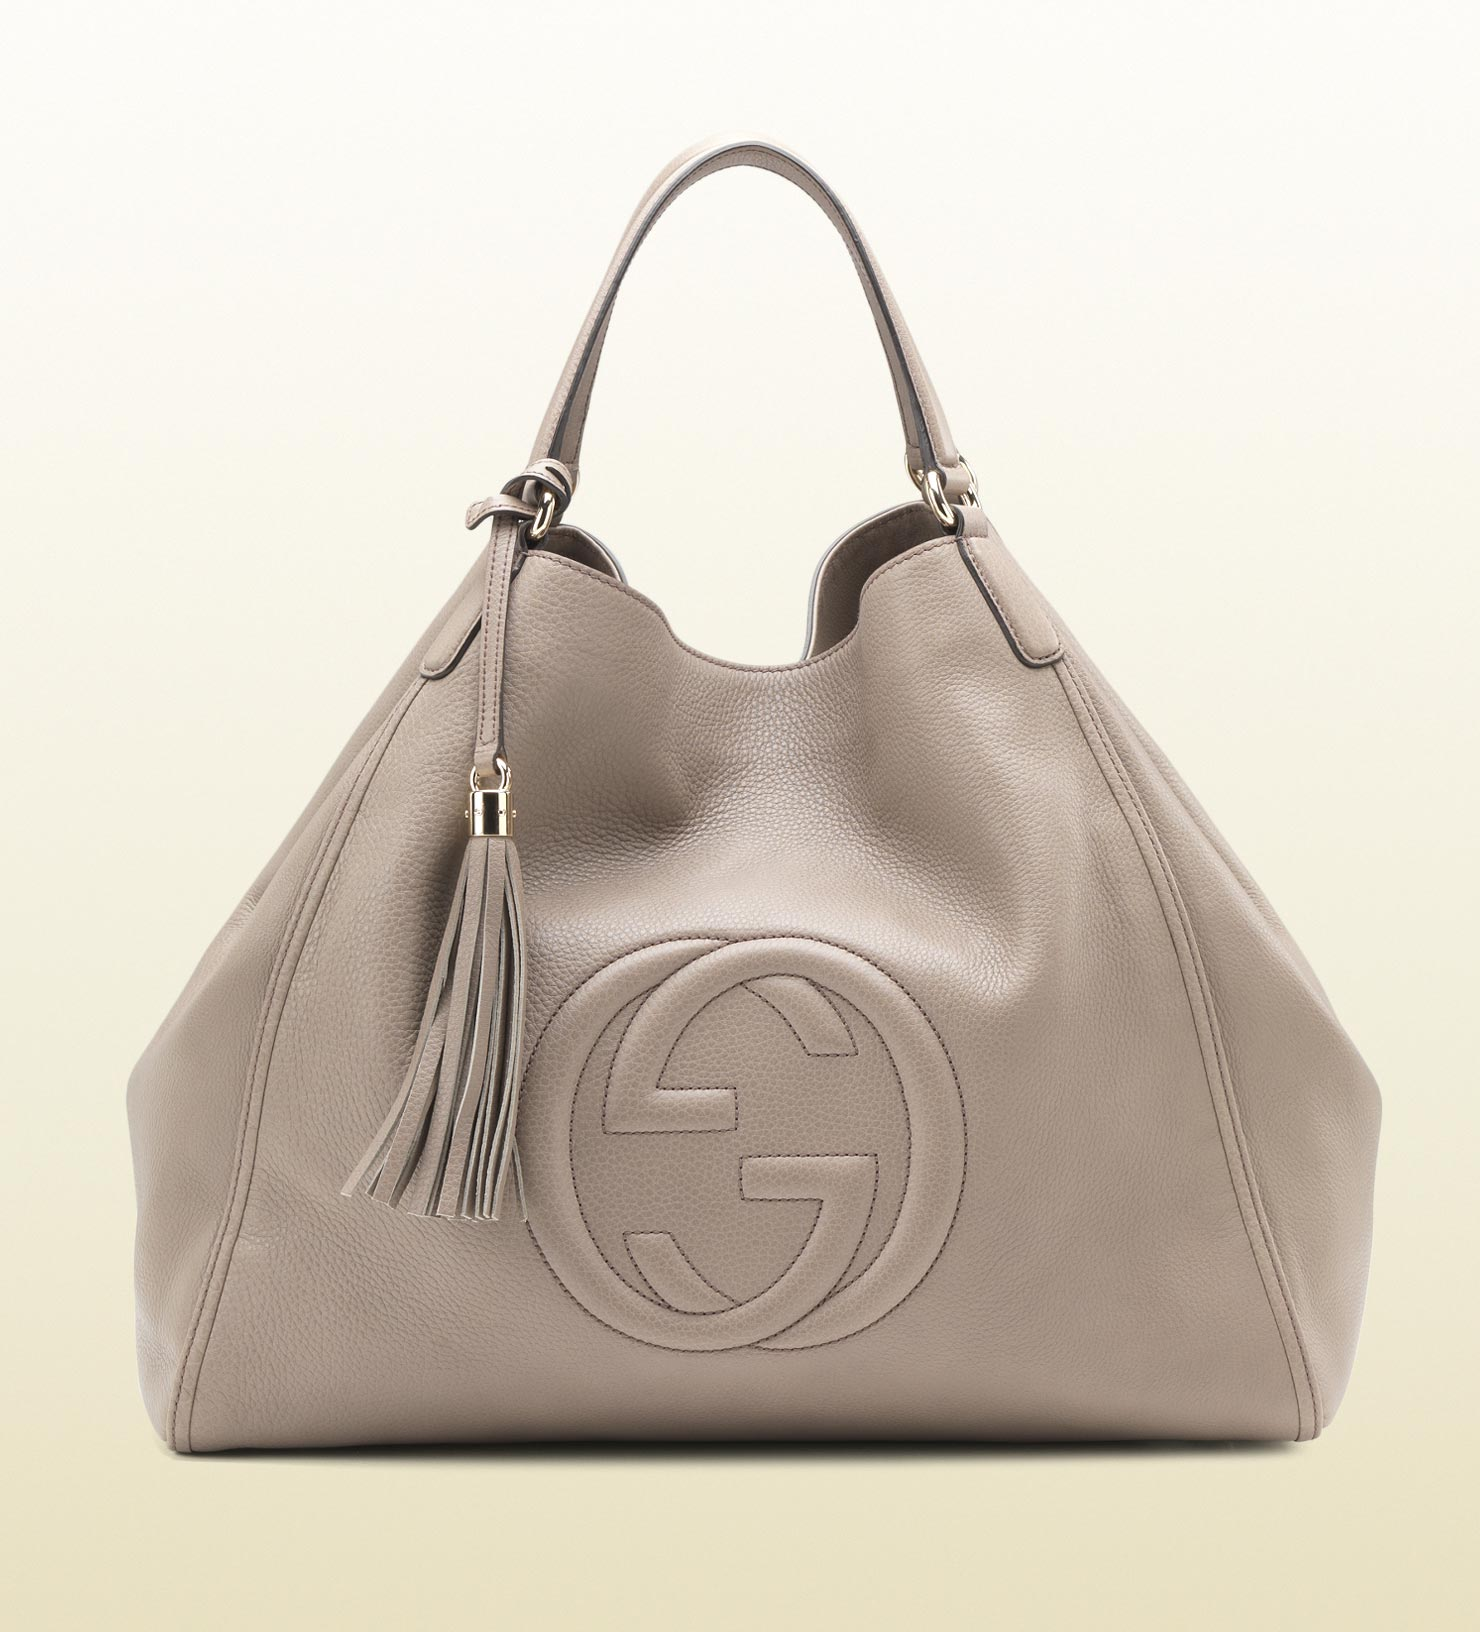 41208689b58 Lyst - Gucci Soho Leather Shoulder Bag in Gray